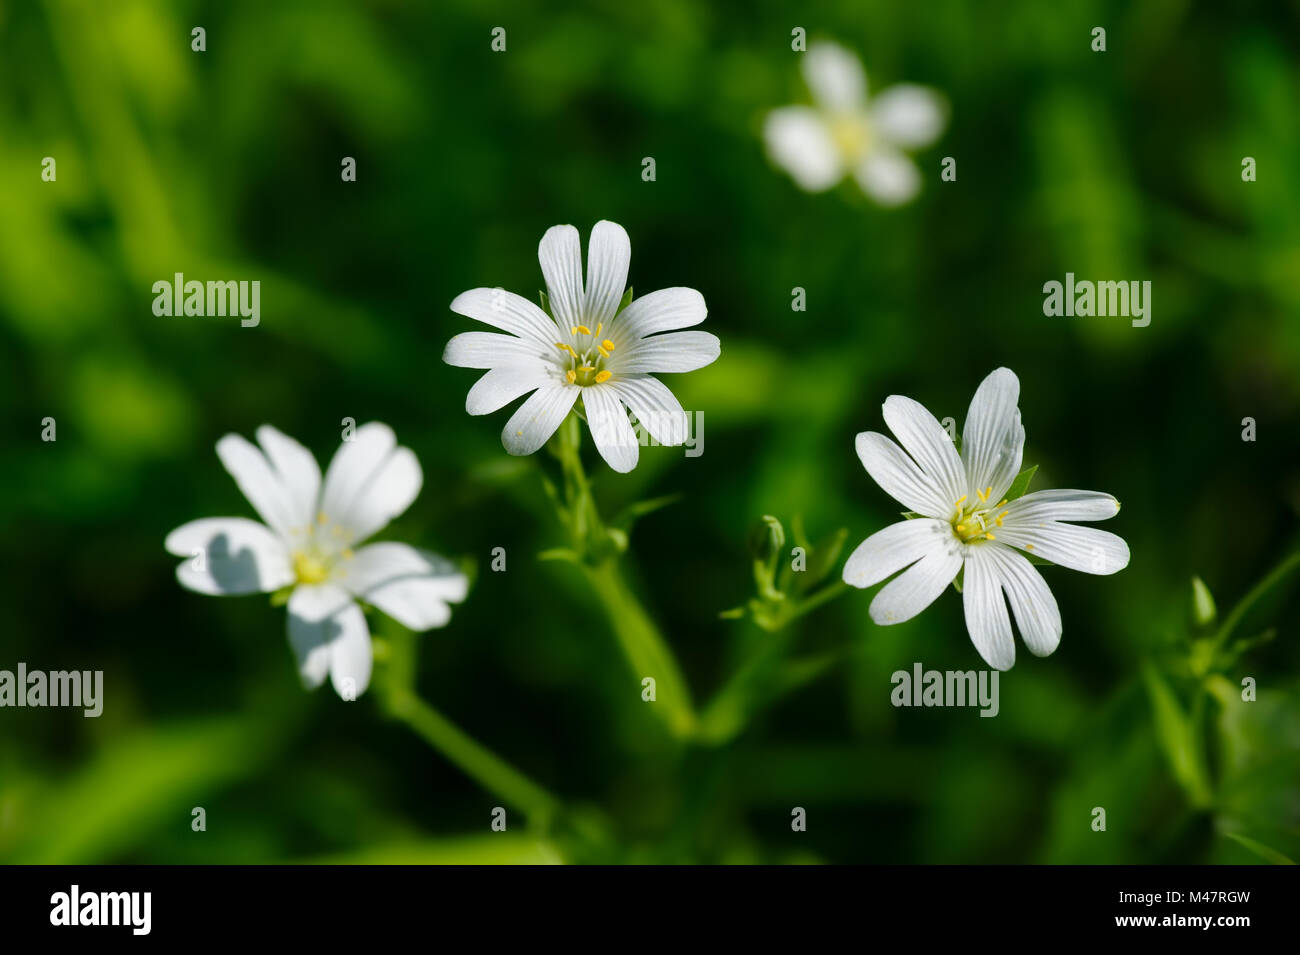 Small white spring flowers stock photo 174734473 alamy small white spring flowers mightylinksfo